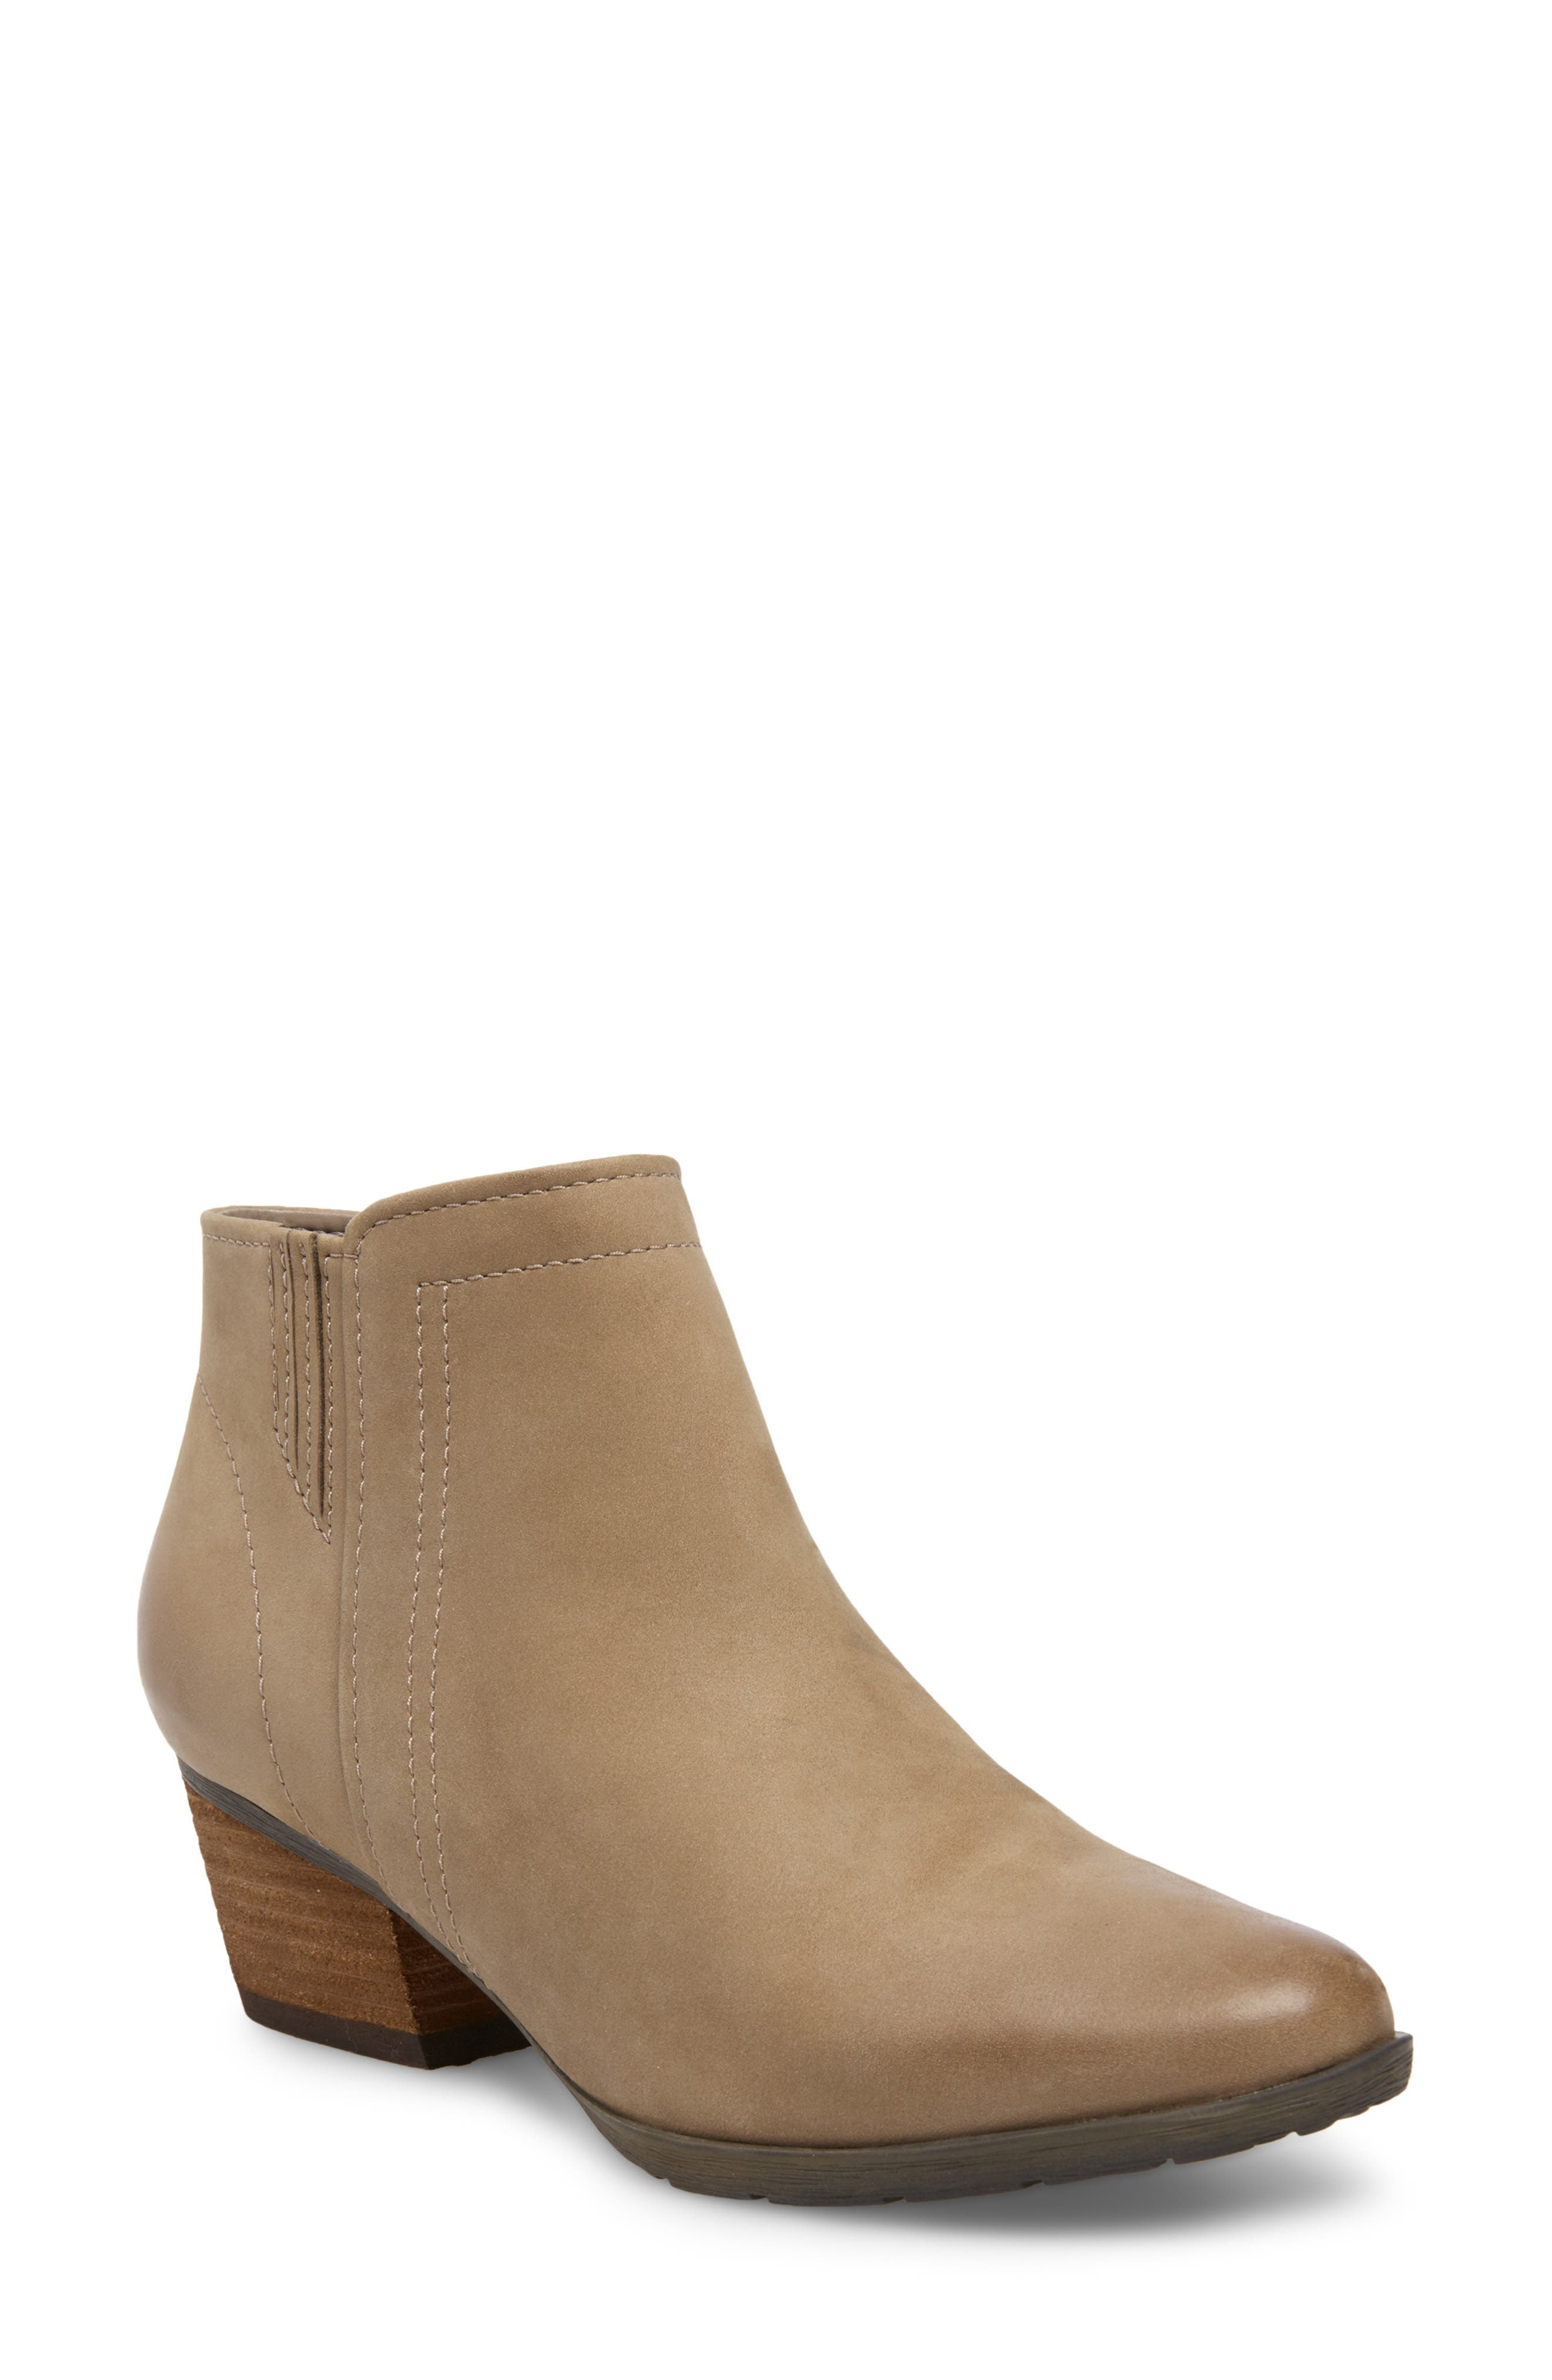 'Valli' Waterproof  Bootie,                             Main thumbnail 1, color,                             MUSHROOM NUBUCK